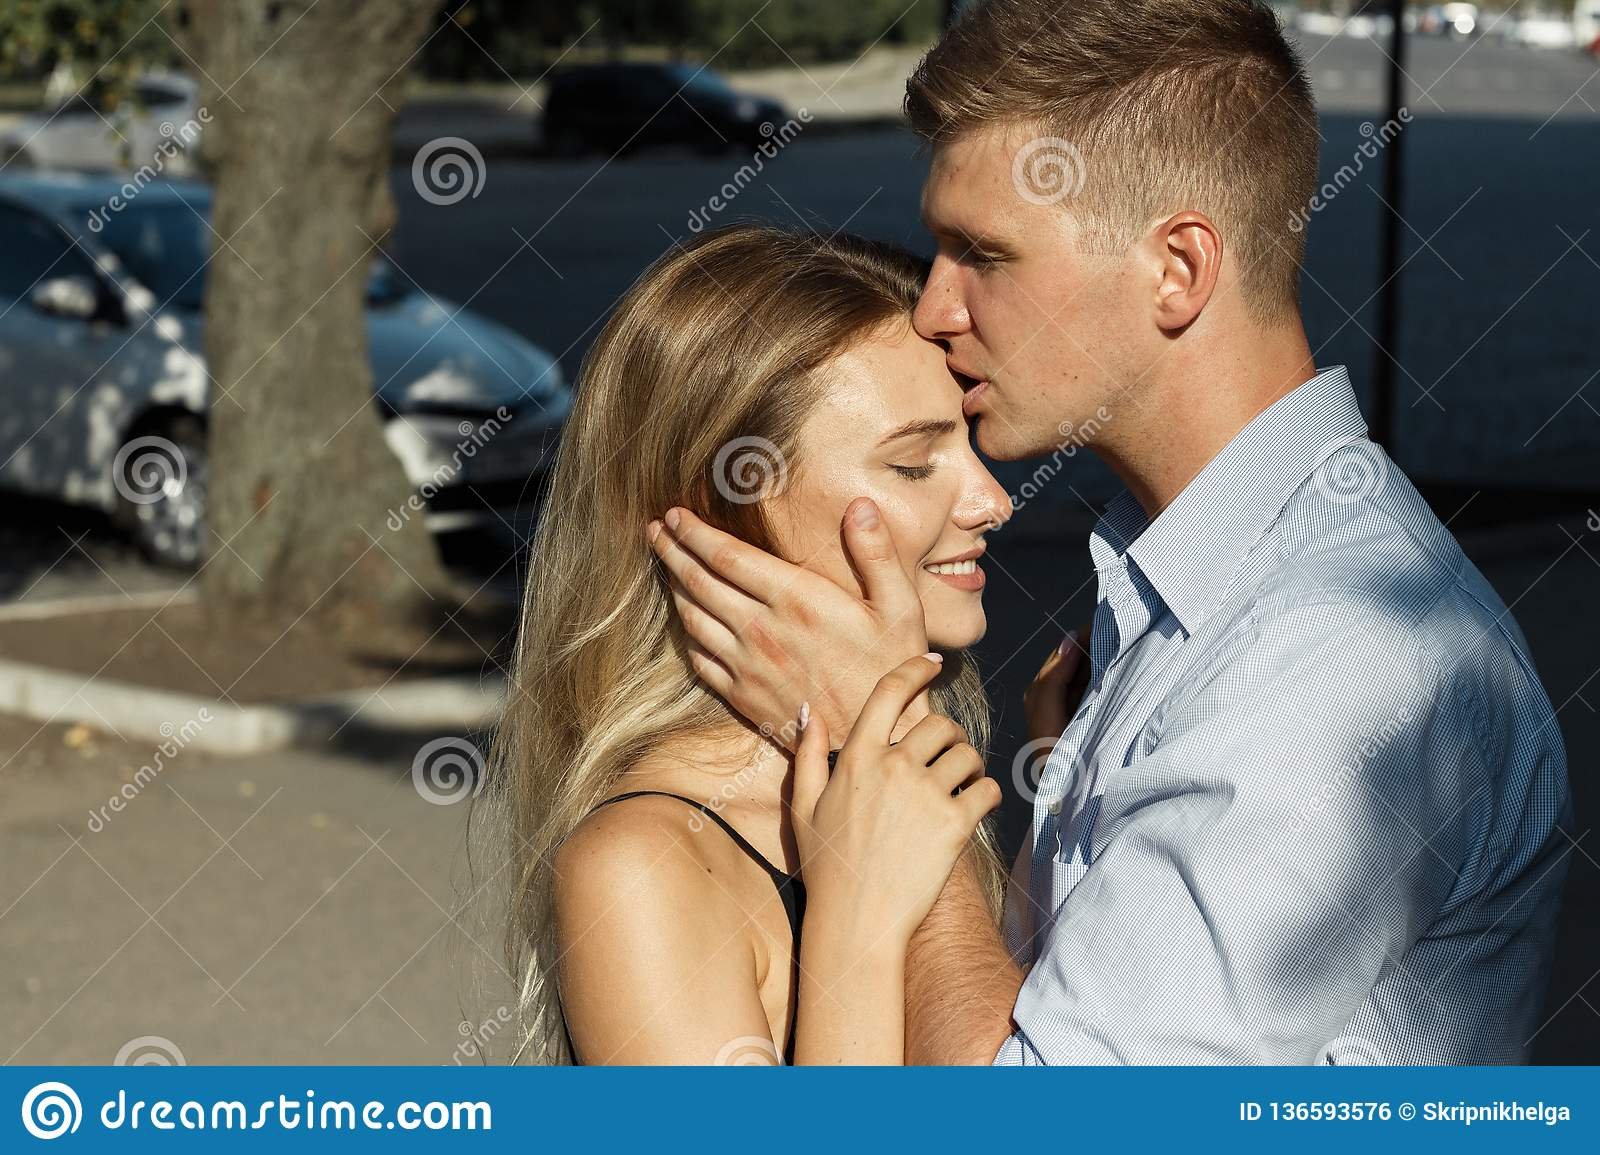 Man Holds Girl For Head And Kisses On Forehead, Close-up